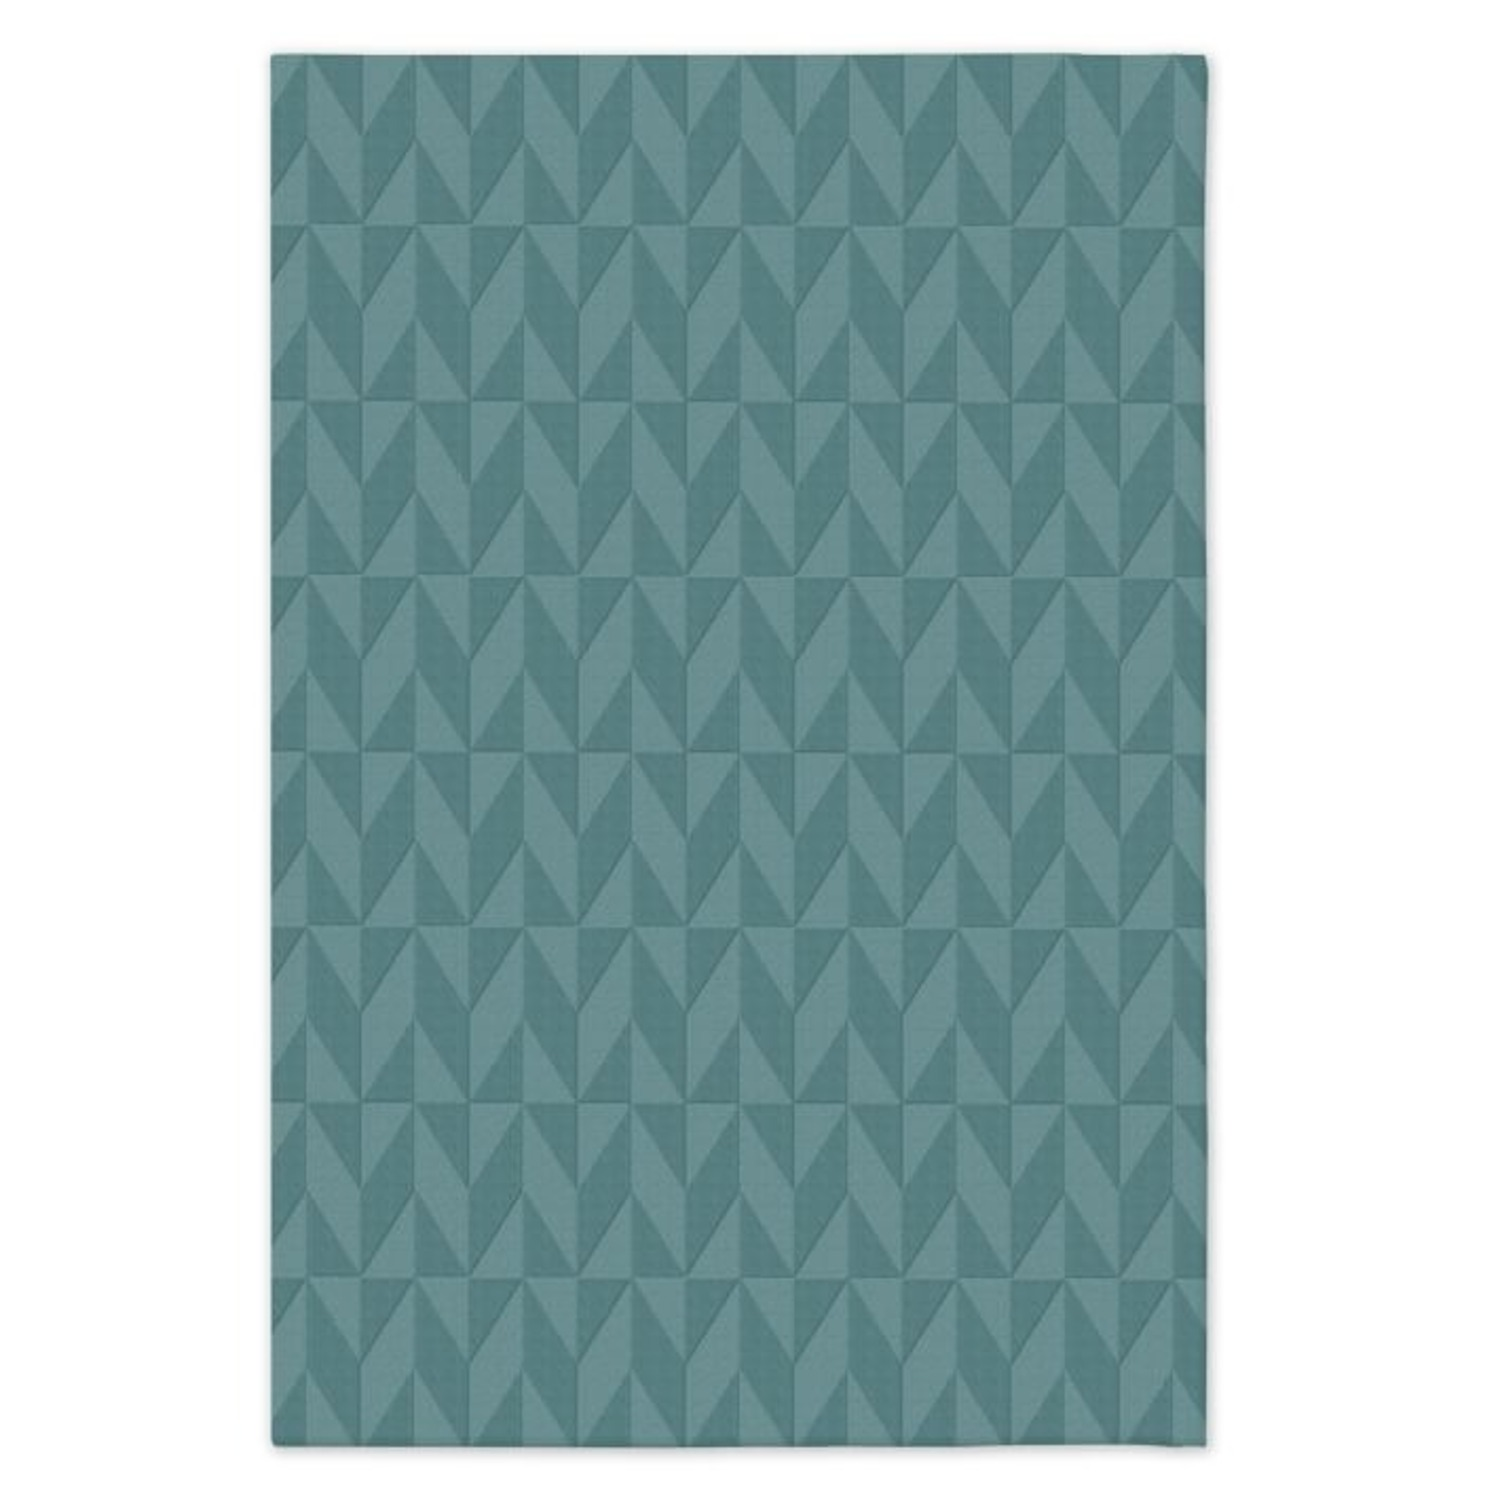 West Elm SPO Andes Rug, True Blue - image-3